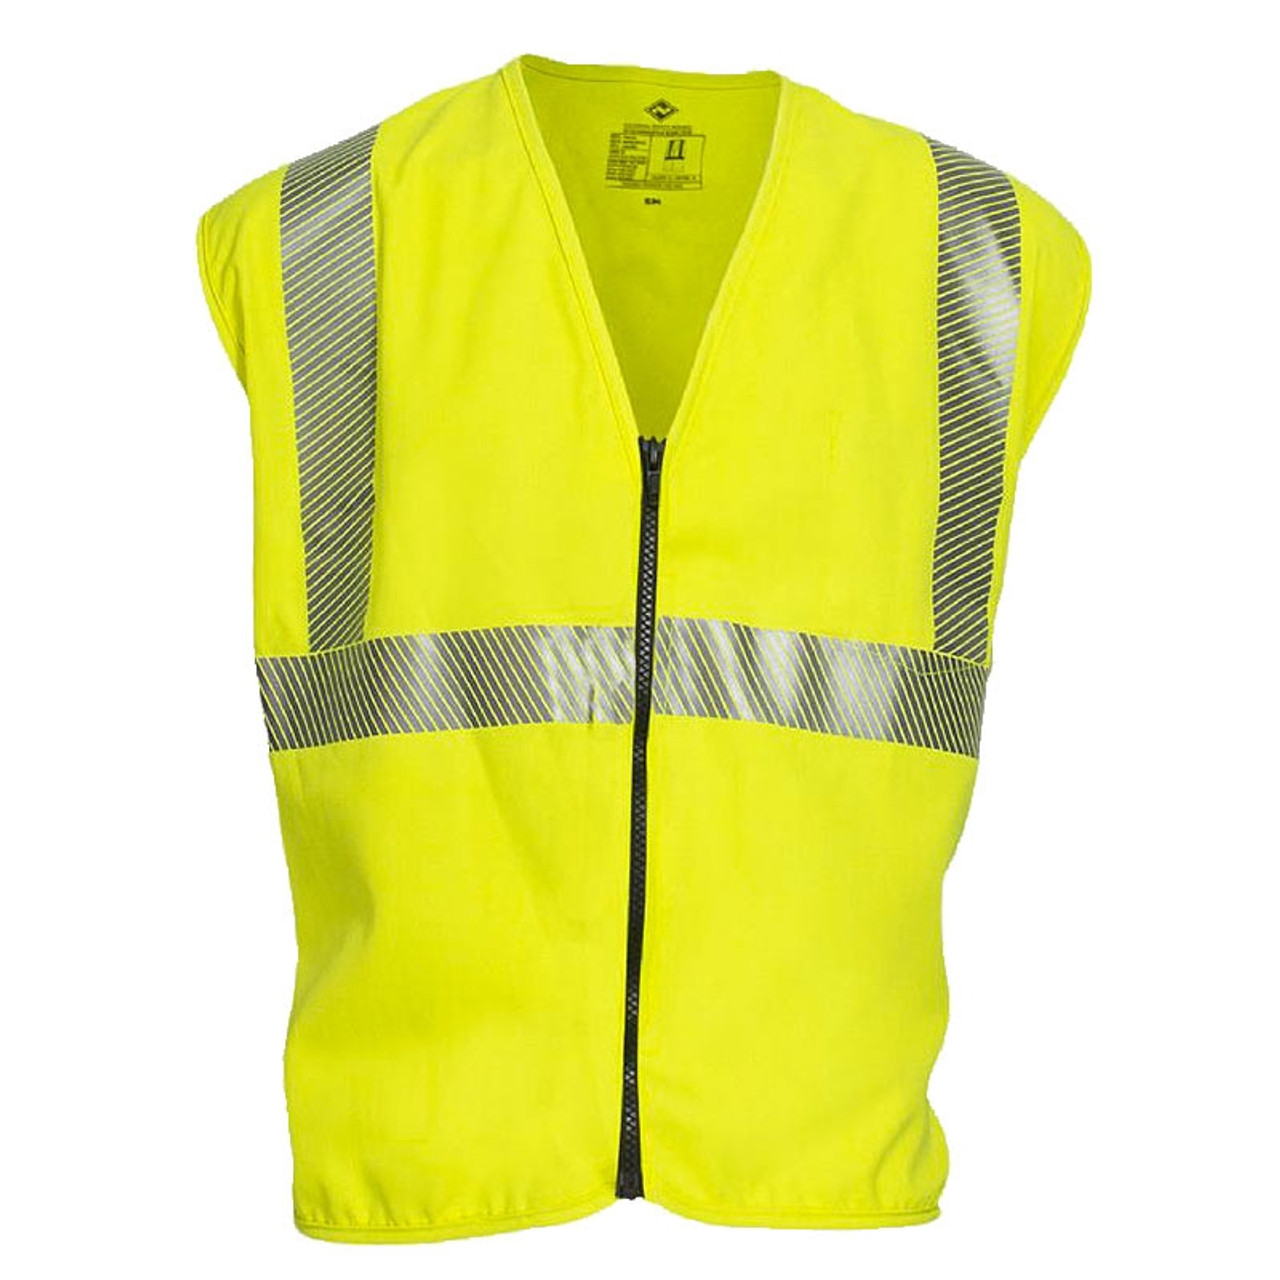 High Visibility Safety Vest Anti-Static Orange Reflective Strips and Zipper 2 Colors to Choose from